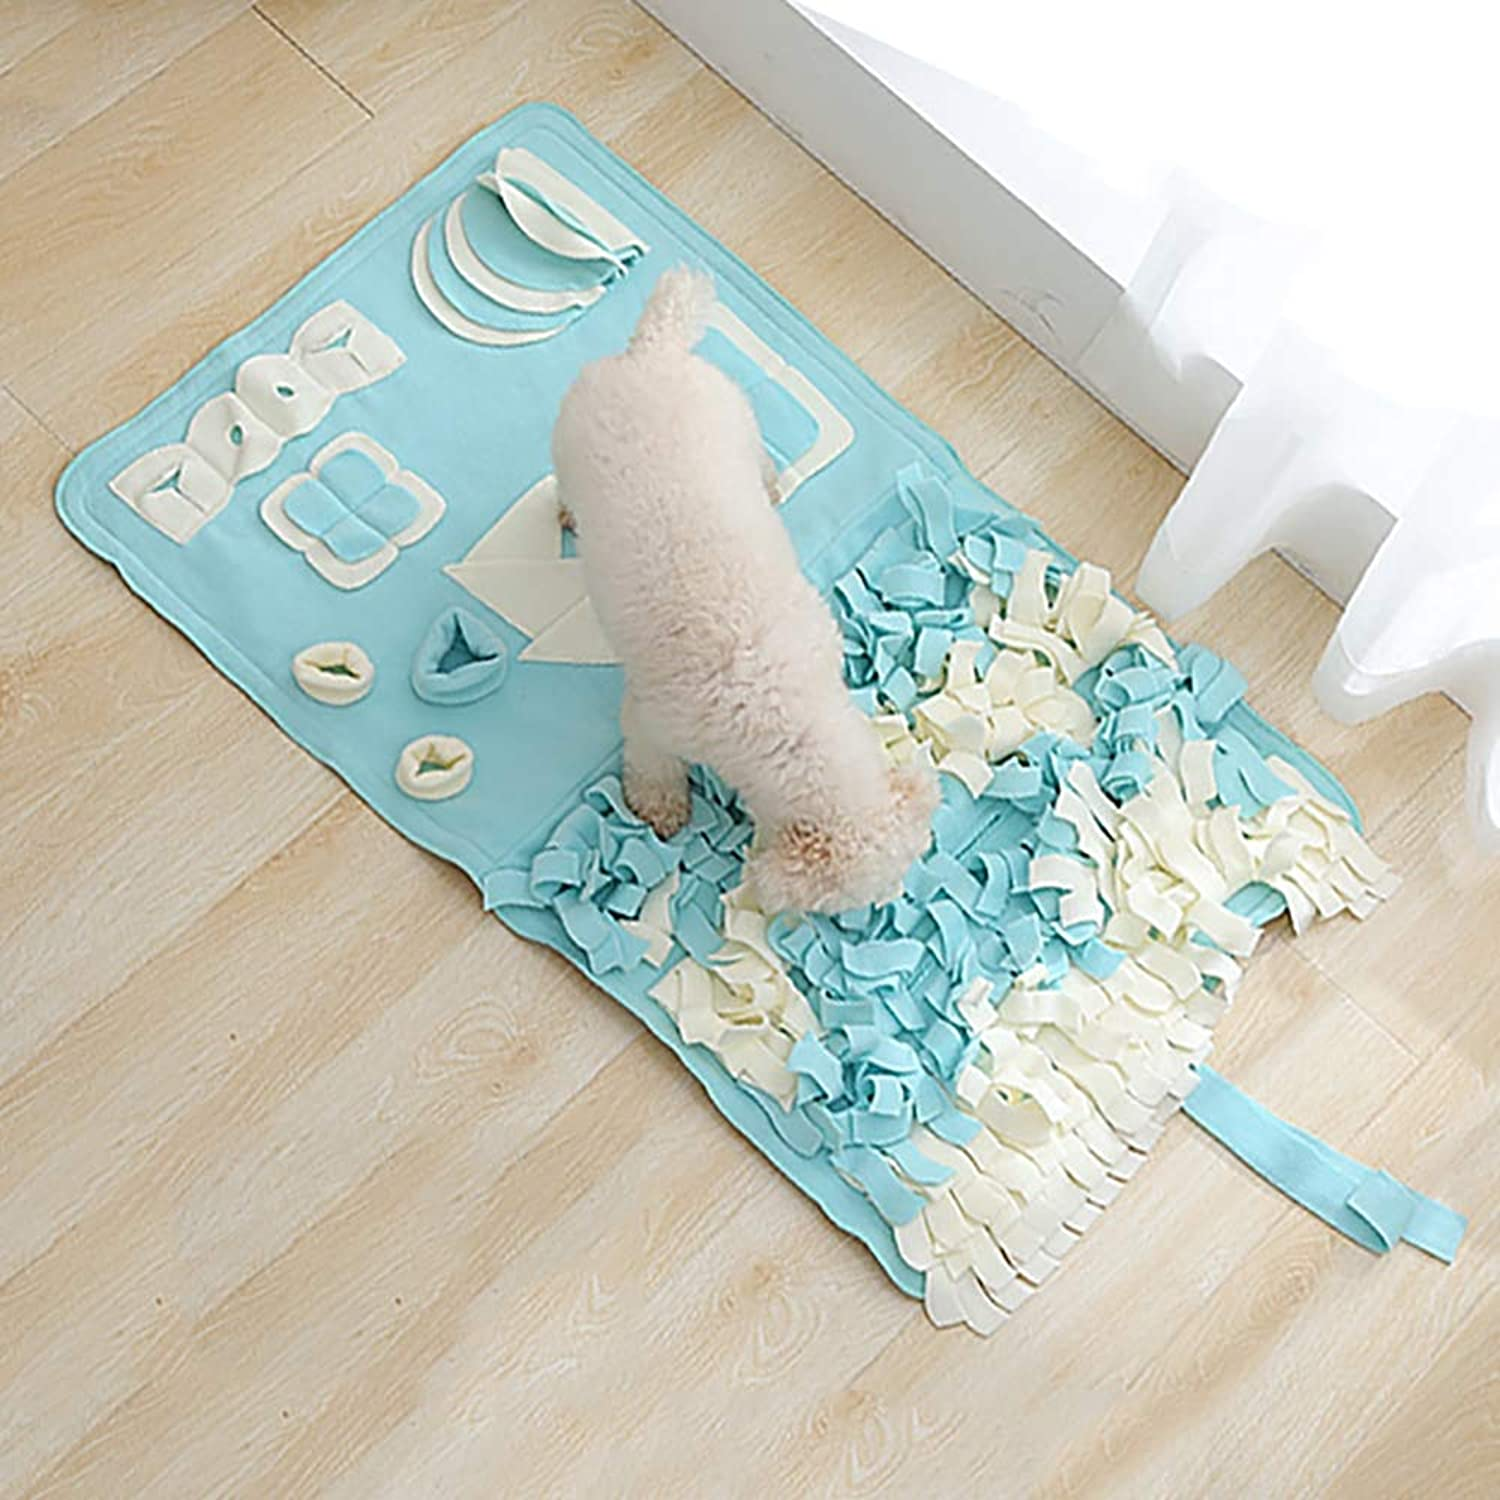 FXQIN Snuffle Mat Dog Feeding Mat, Training Pad Pet Nose Work Blanket Non Slip Pet Activity Mat for Foraging Skill, Great for Stress Release (S, M,L),L